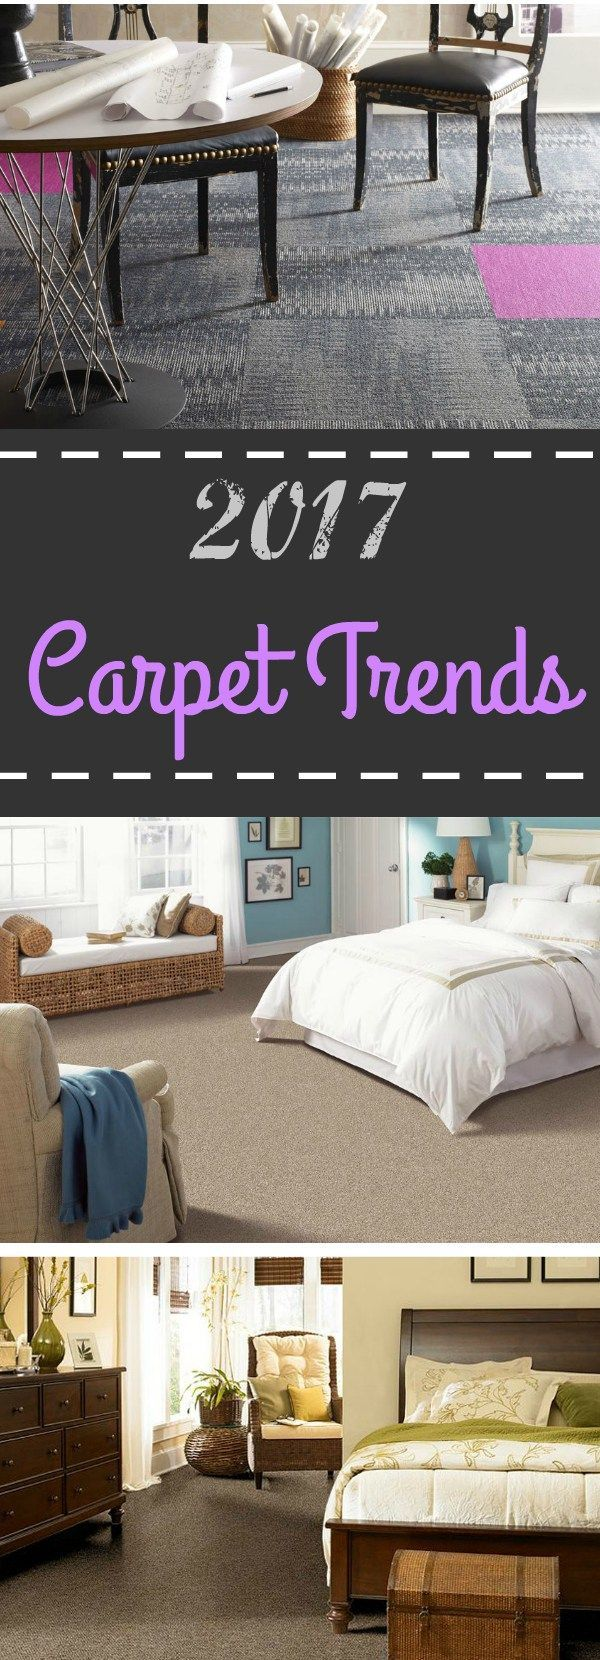 2017 Carpet Trends 10 Ways To Stay Current Flooring Inc Carpet Trends Bedroom Carpet Flooring Trends